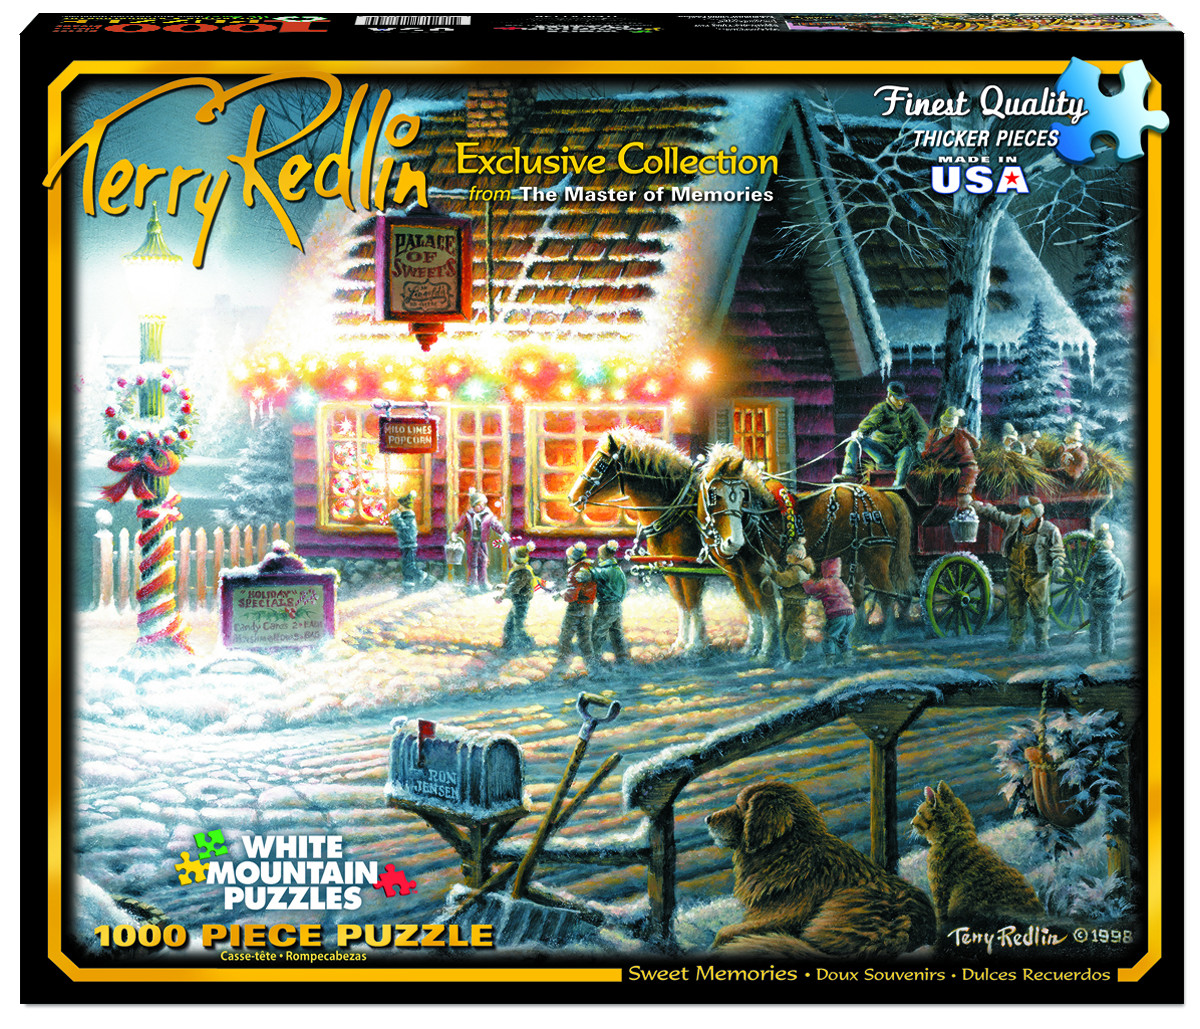 Sweet Memories (Terry Redlin Collection) Inspirational Jigsaw Puzzle